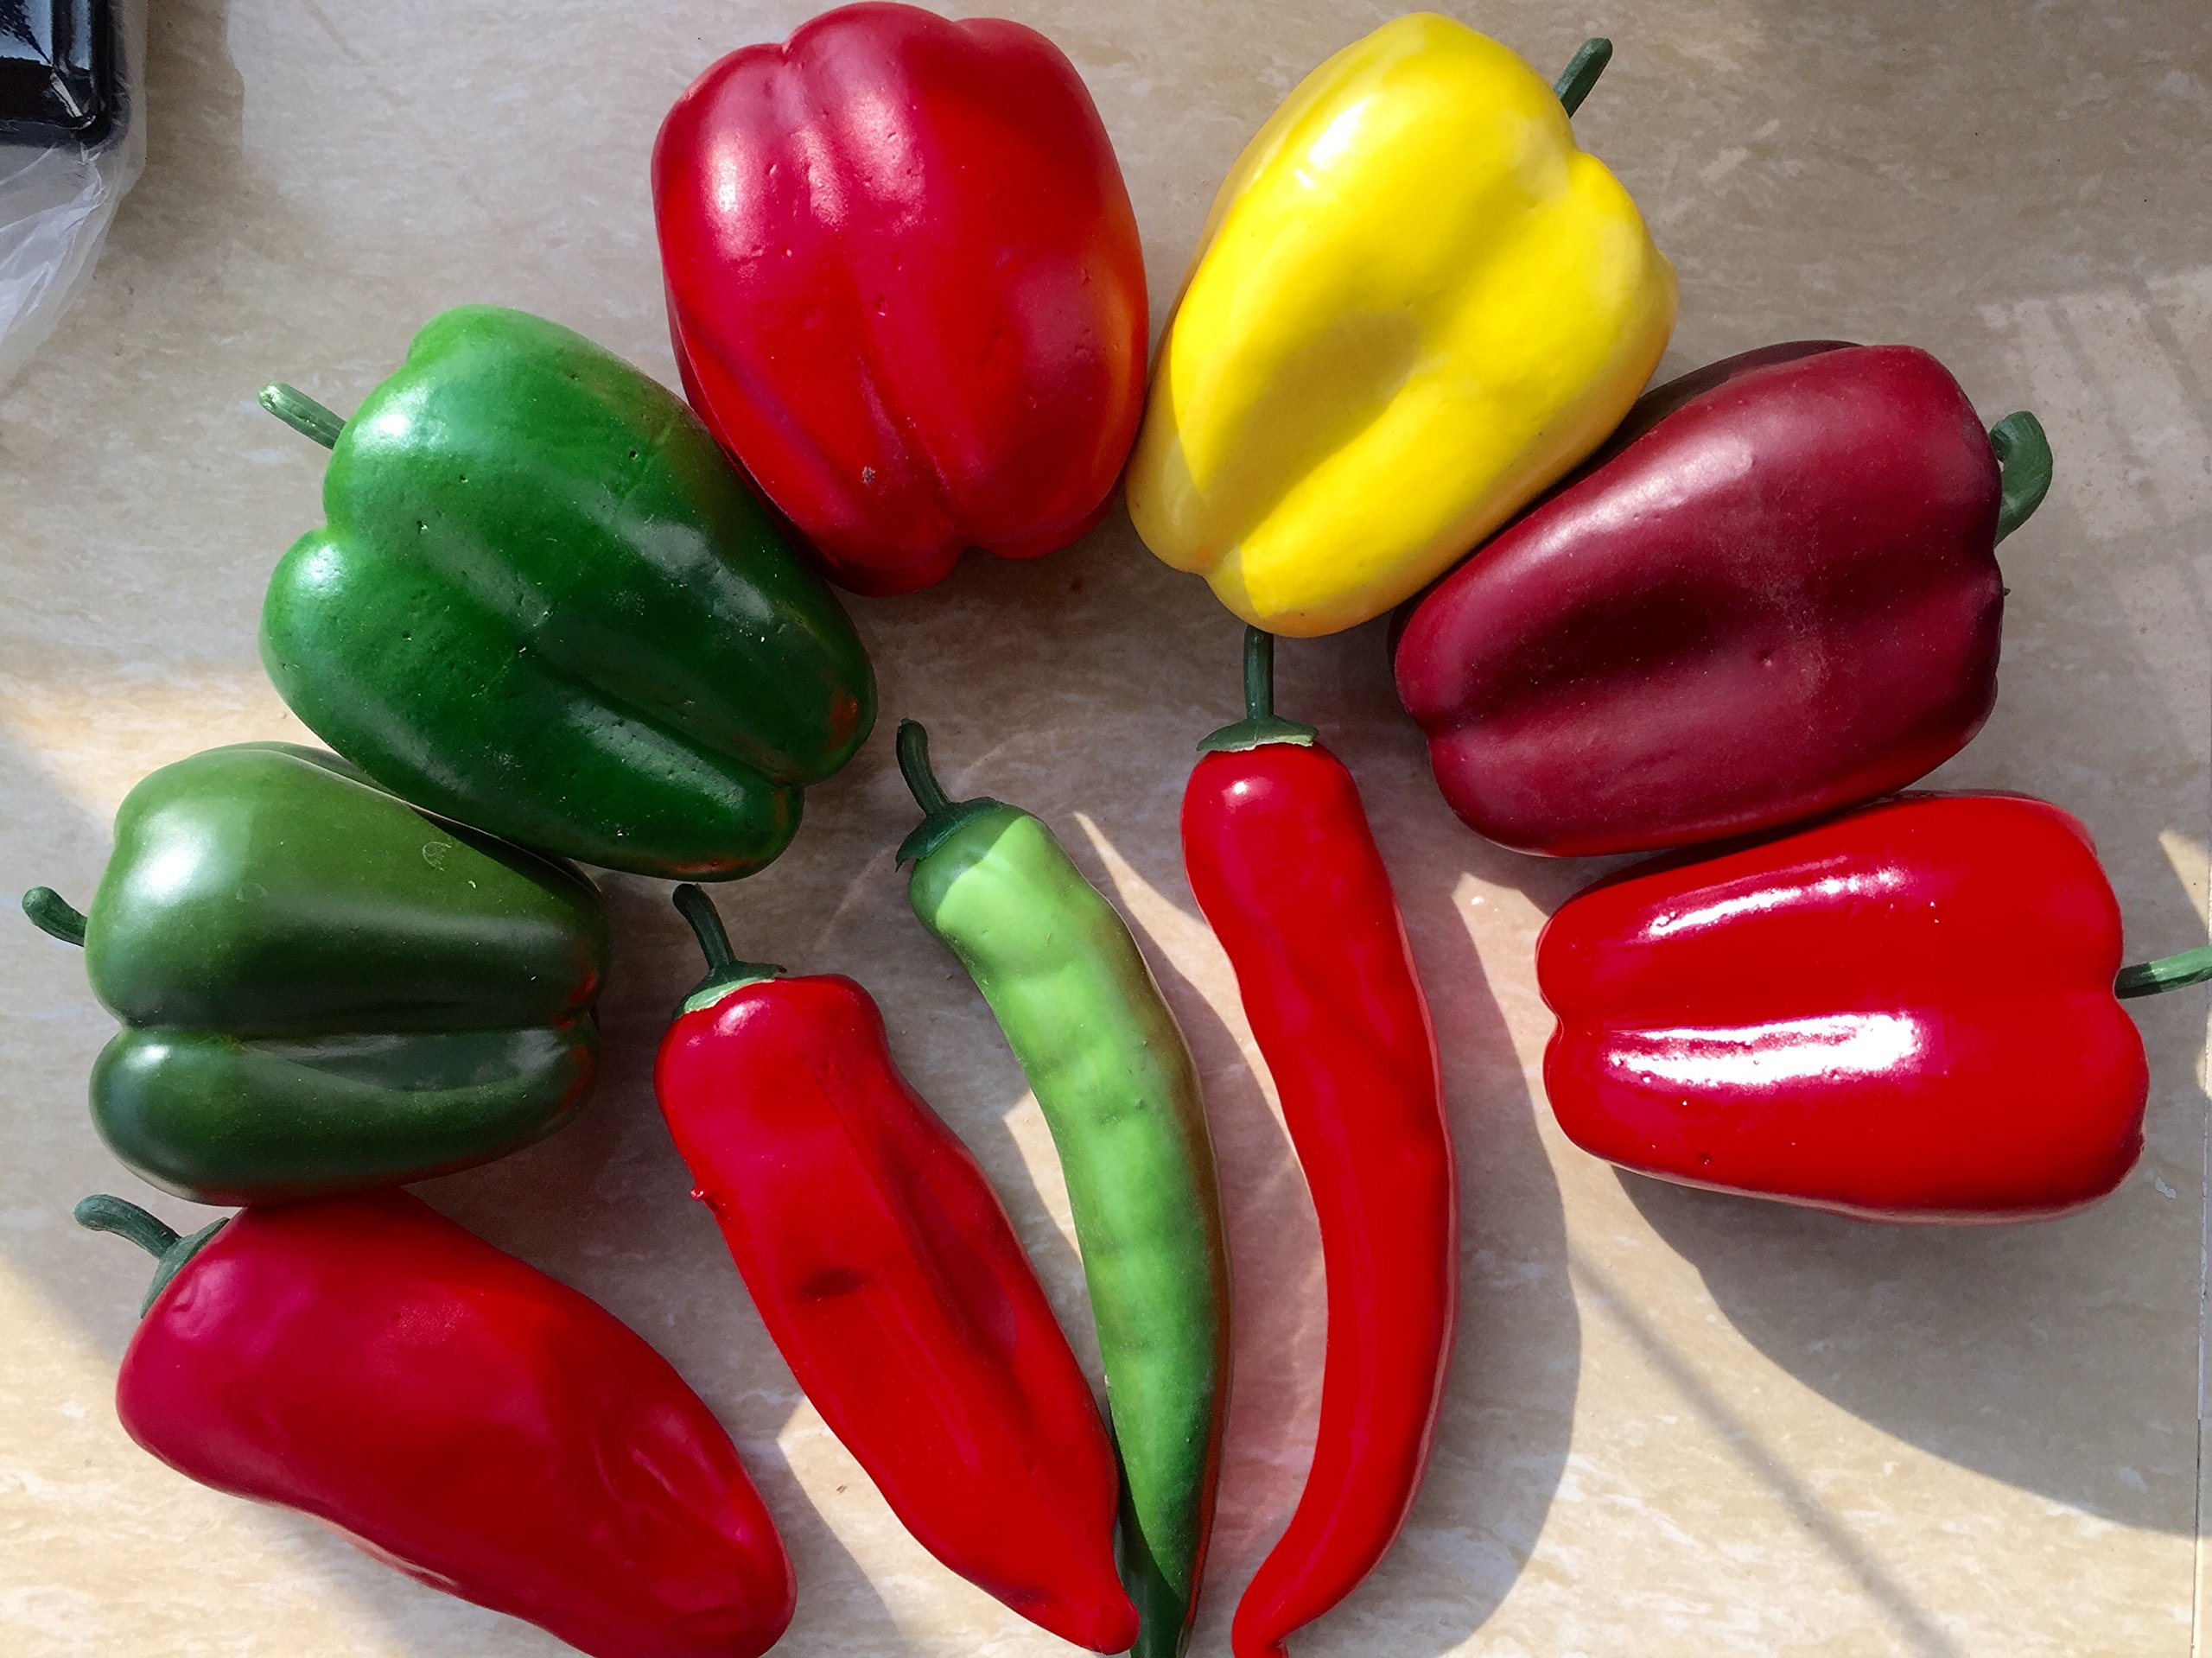 sexyrobot 10pcs Simulation Artificial Lifelike Chili Fake Pepper Vegetable, Mini Fake Vegetable for Home Kitchen Decoration, Teaching Aids